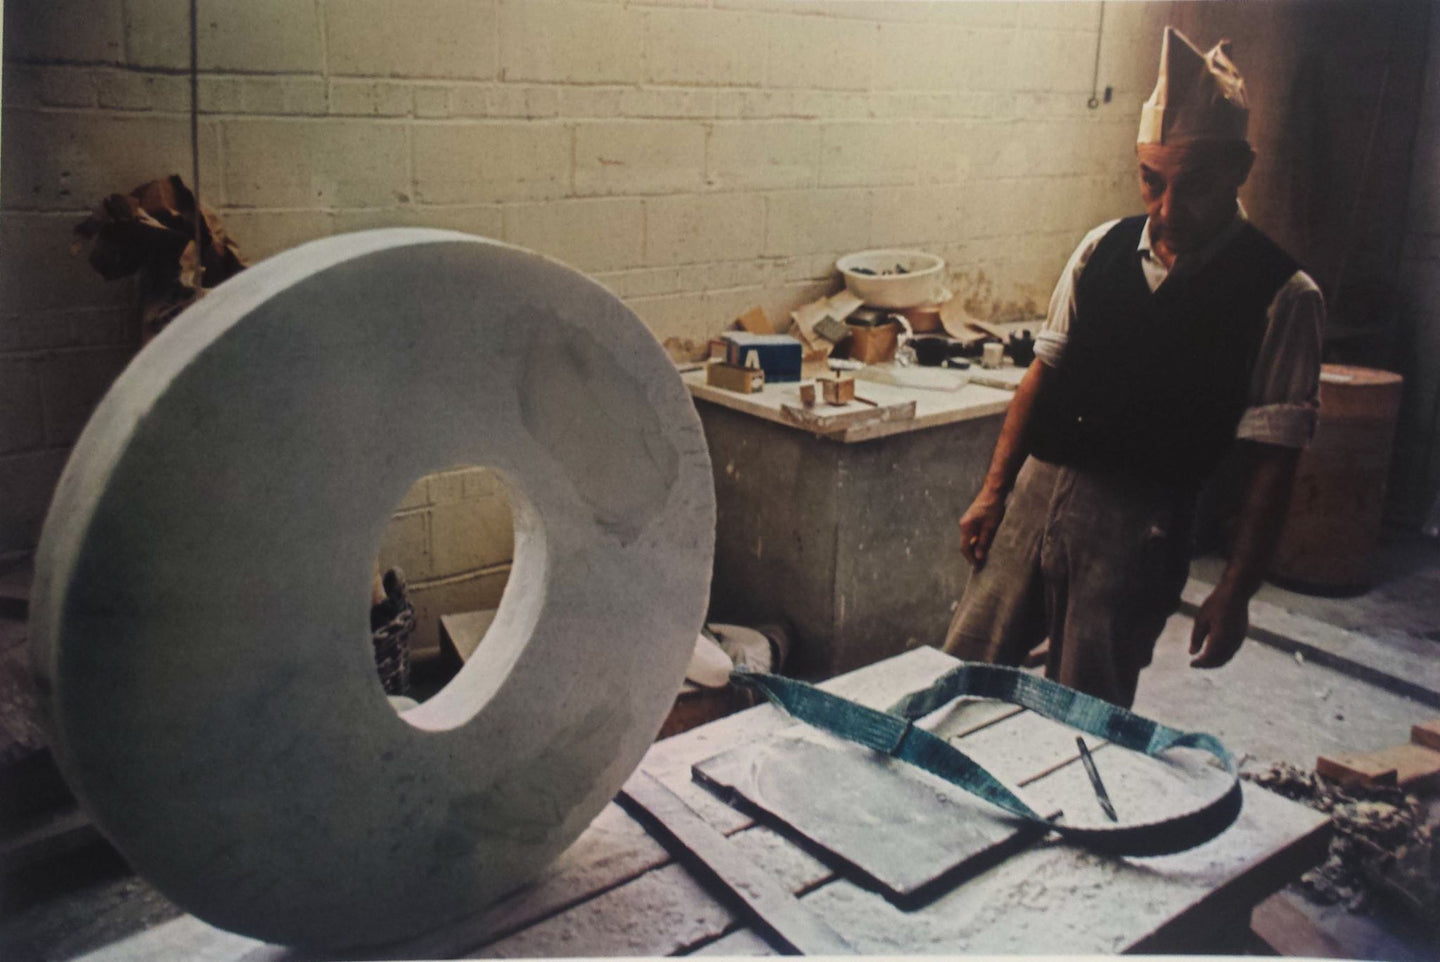 Isamu Noguchi (1904-1988) working on The Sky, Long Island City, New York, 1964 Default Title